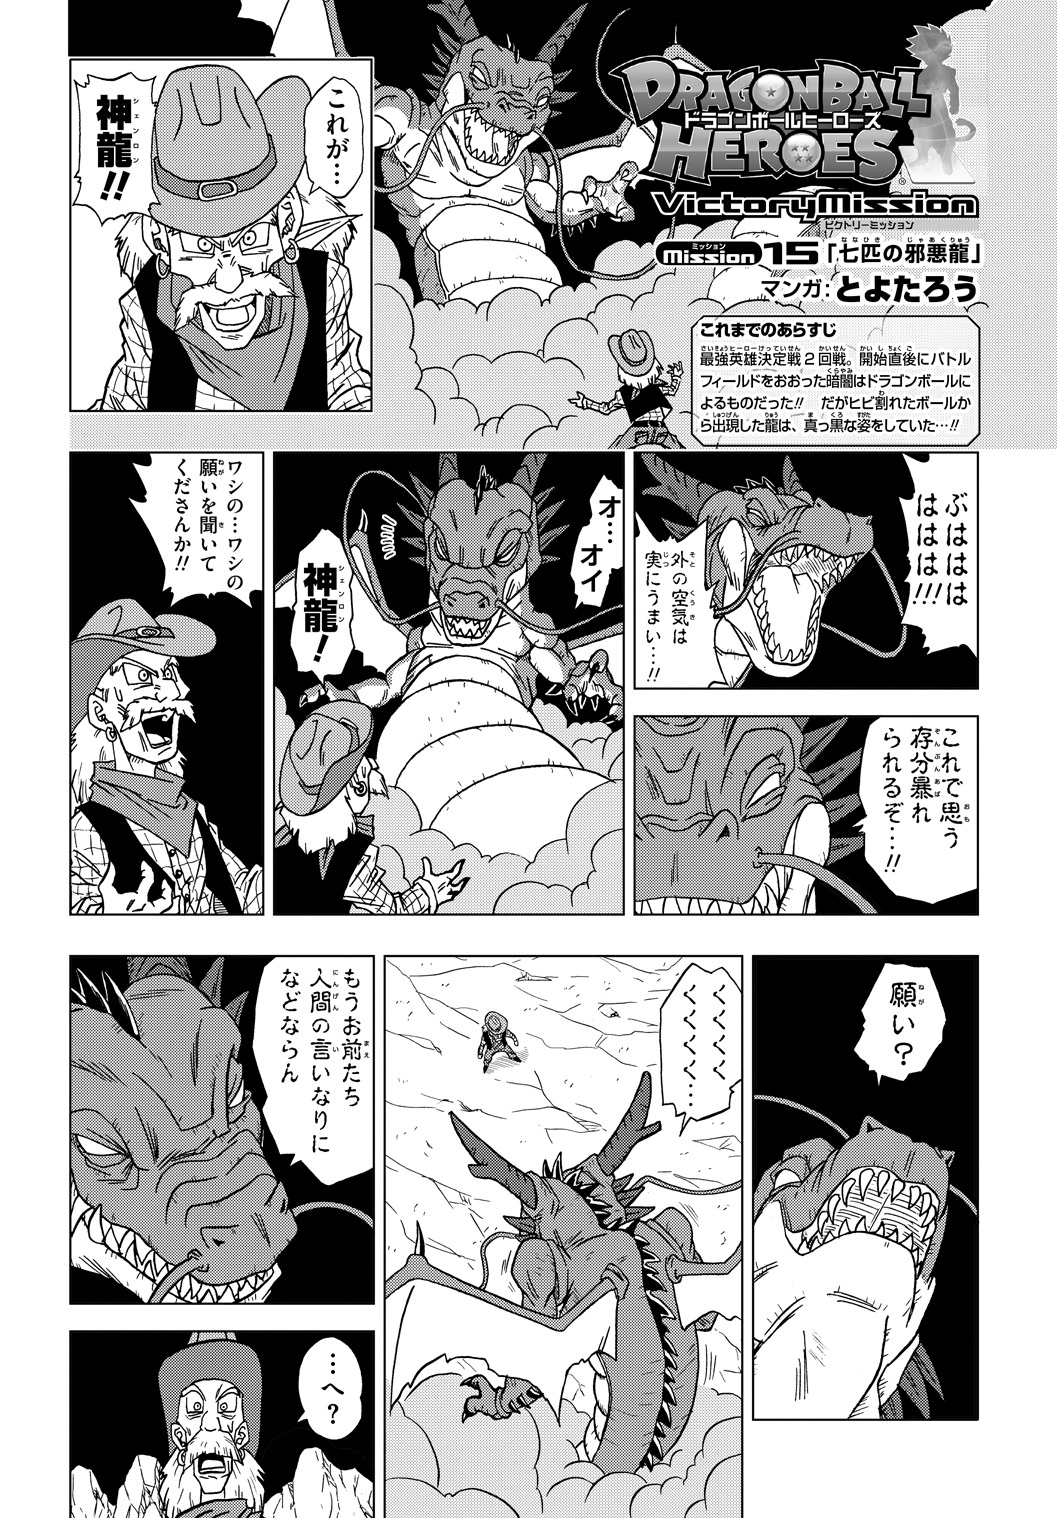 Dragon Ball Heroes Victory Mission Chapitre 015